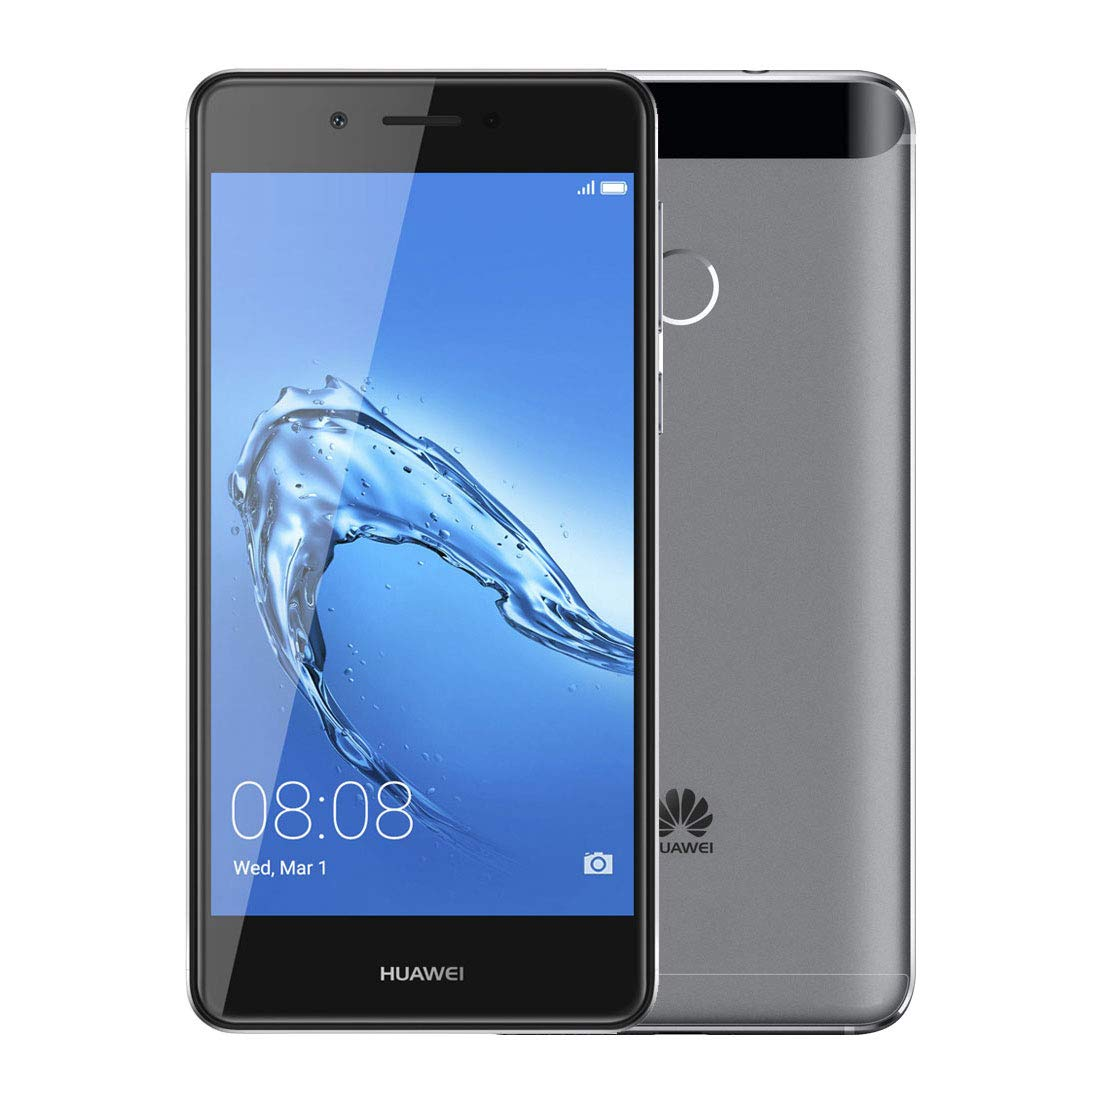 HUAWEI - Nova Smart Tim: Amazon.es: Electrónica